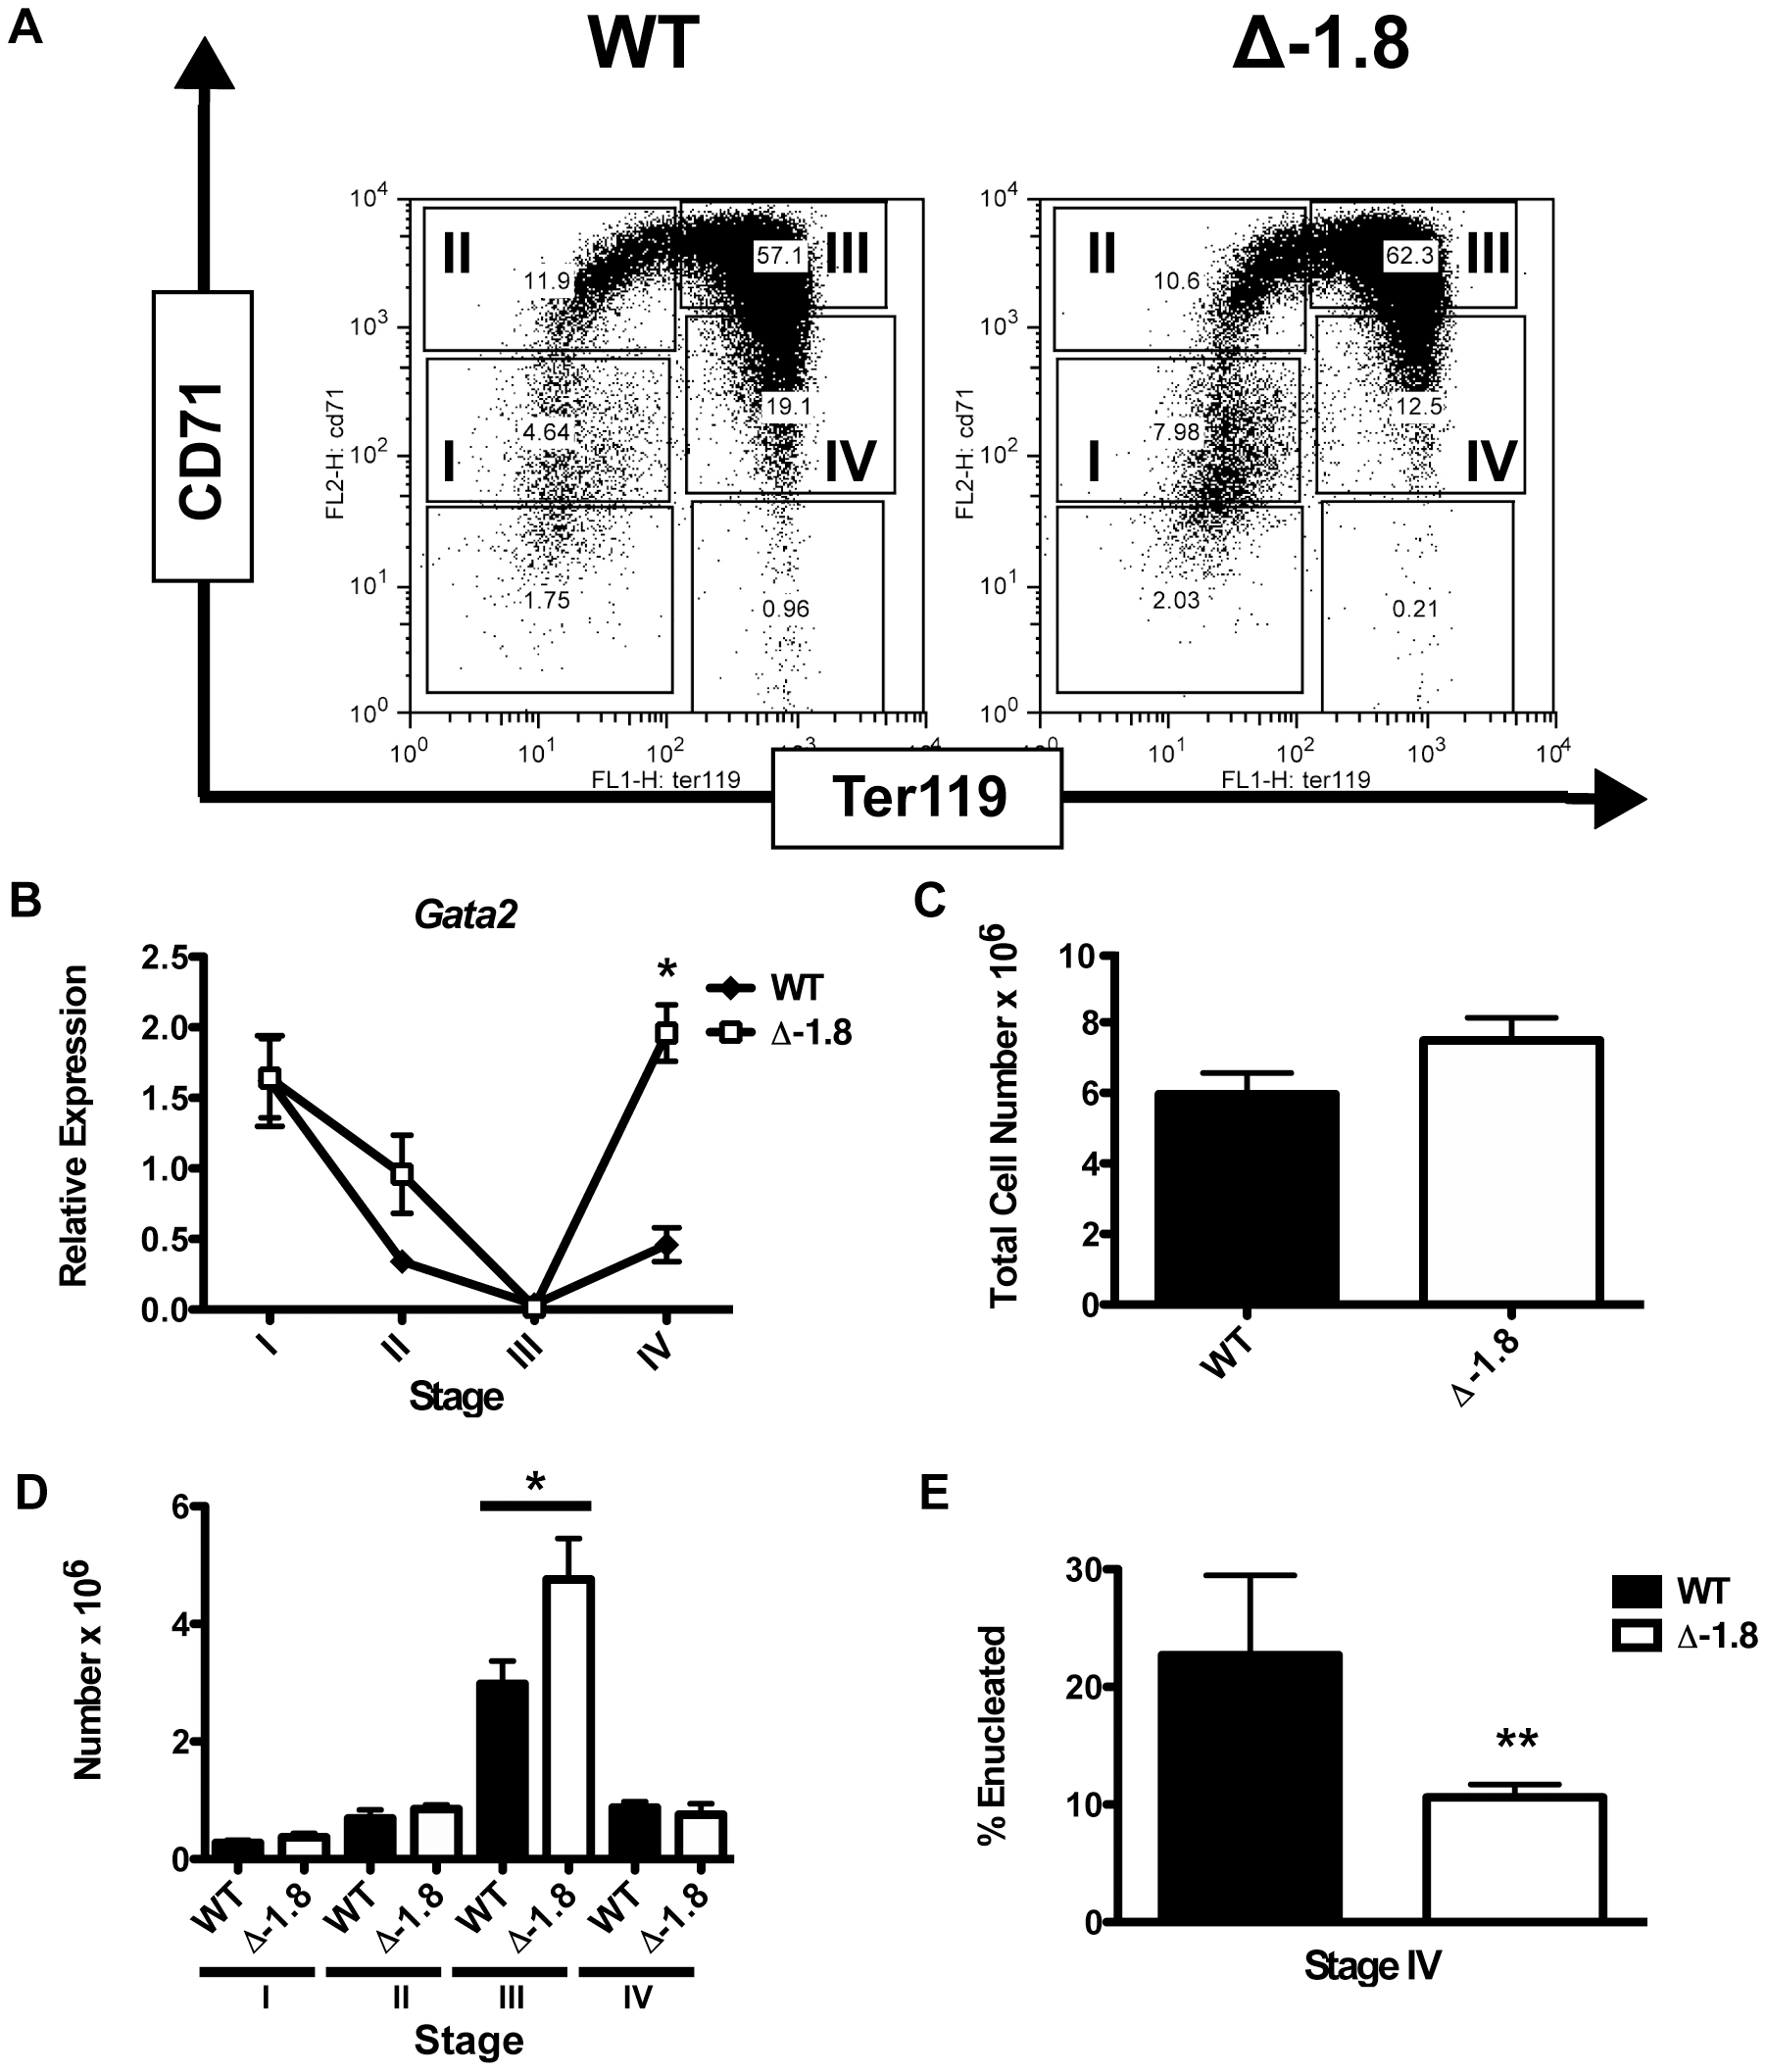 Alterations in <i>Gata2</i> expression in late erythroid development in Δ-1.8 mice.